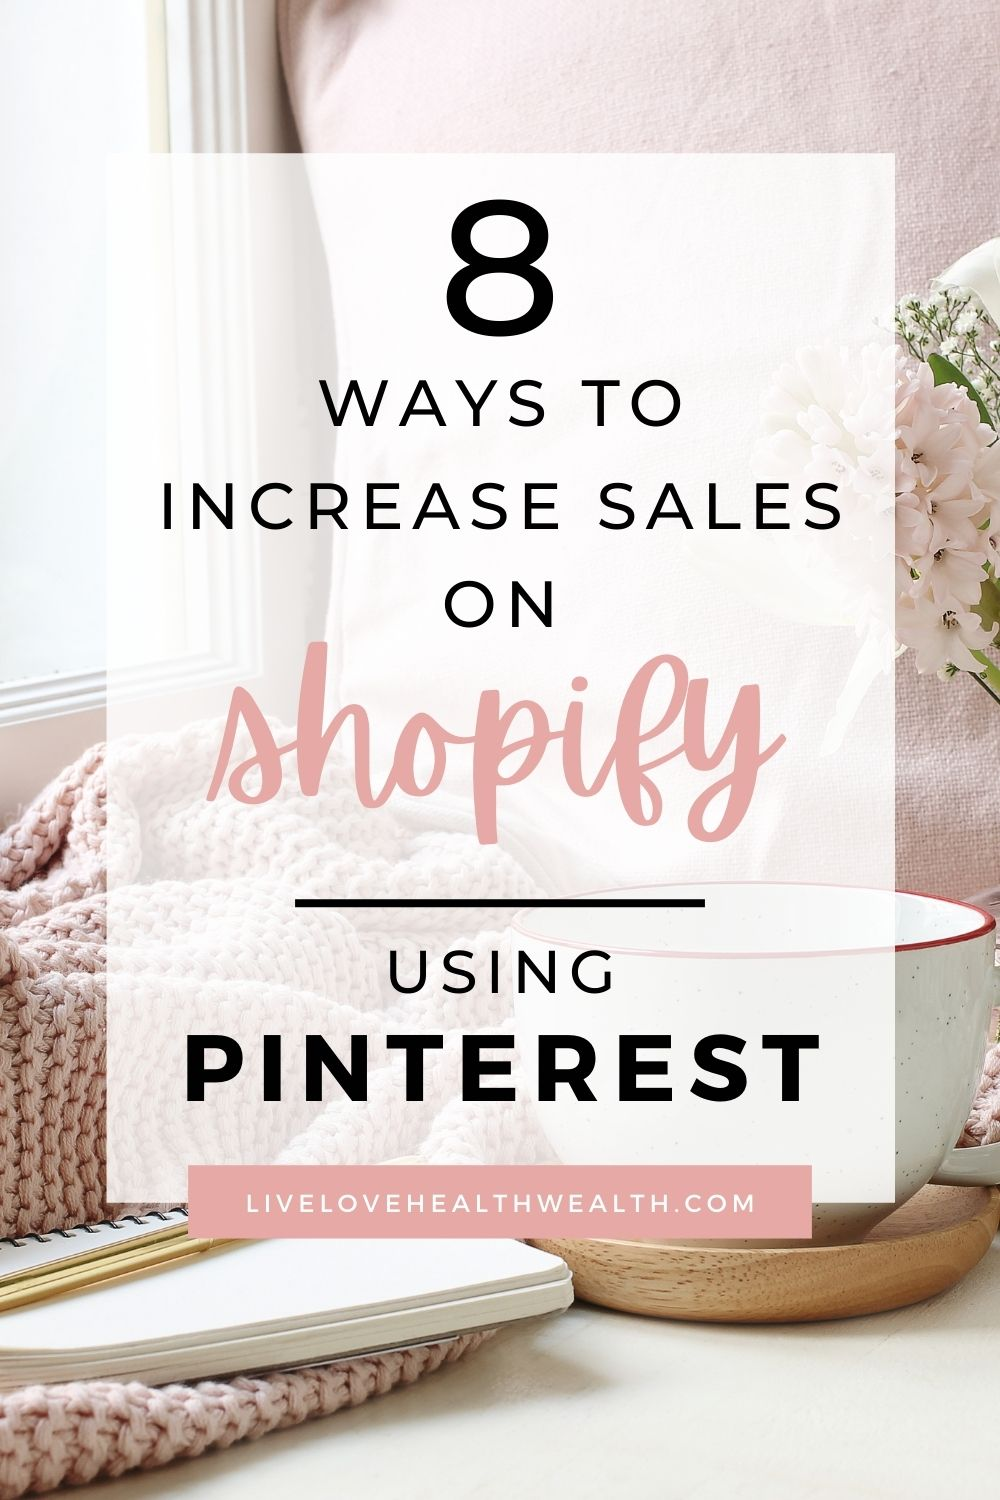 HOW TO USE PINTEREST TO DRIVE TRAFFIC TO YOUR SHOPIFY STORE